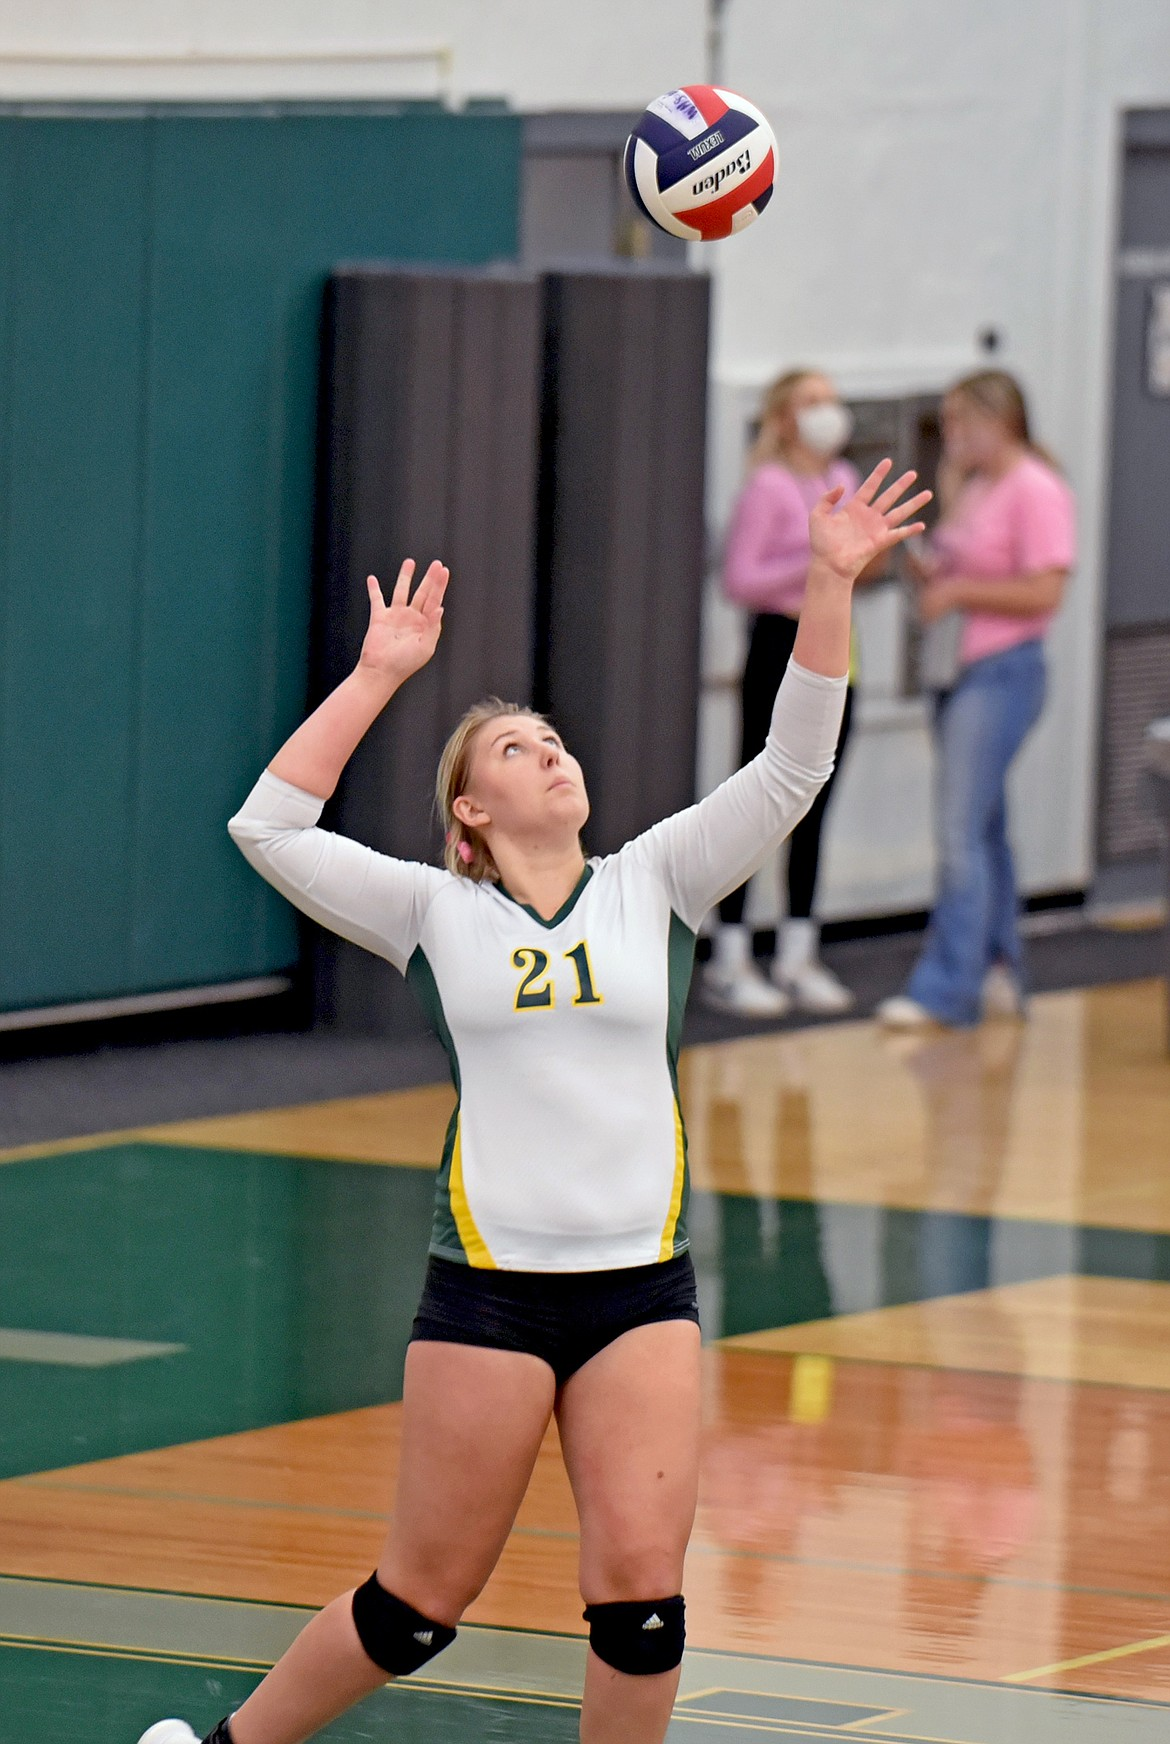 Whitefish senior Brook Smith lines up the ball as she serves in a match against Polson Tuesday, Oct. 6. (Whitney England/Whitefish Pilot)